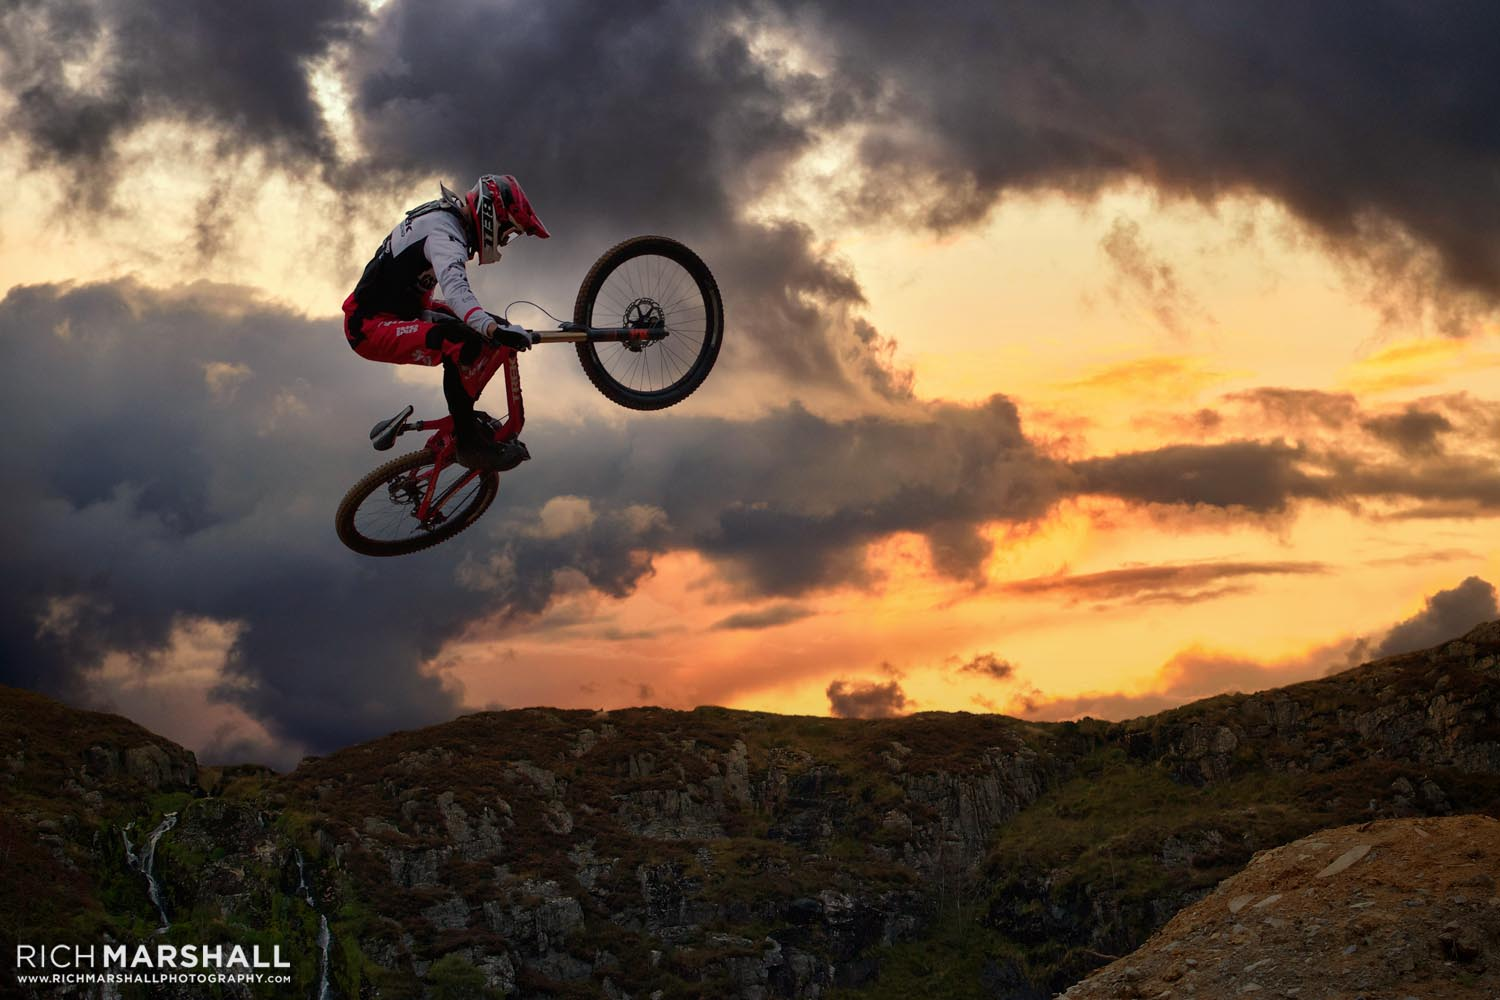 A different more dramatic sky with ground and mountain biker further darkened to add realism.